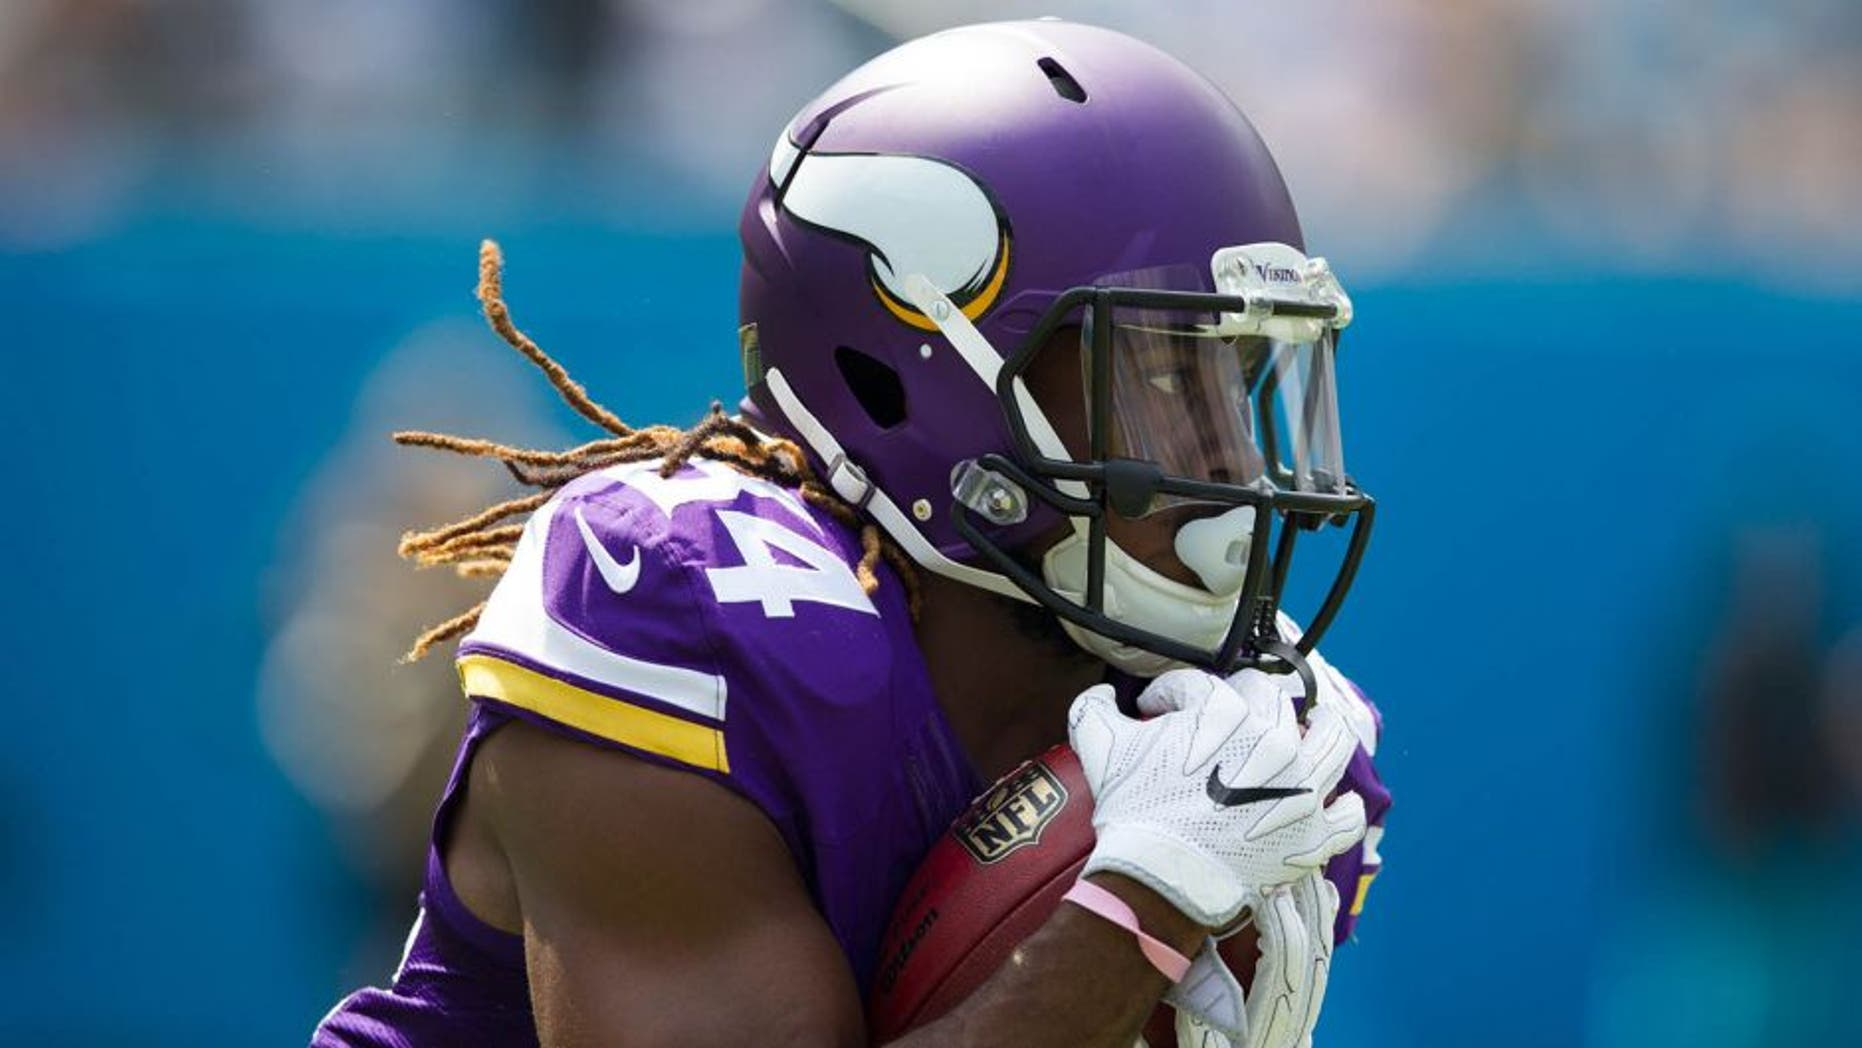 Sep 25, 2016; Charlotte, NC, USA; Minnesota Vikings wide receiver Cordarrelle Patterson (84) runs the ball during the first quarter against the Carolina Panthers at Bank of America Stadium. Mandatory Credit: Jeremy Brevard-USA TODAY Sports